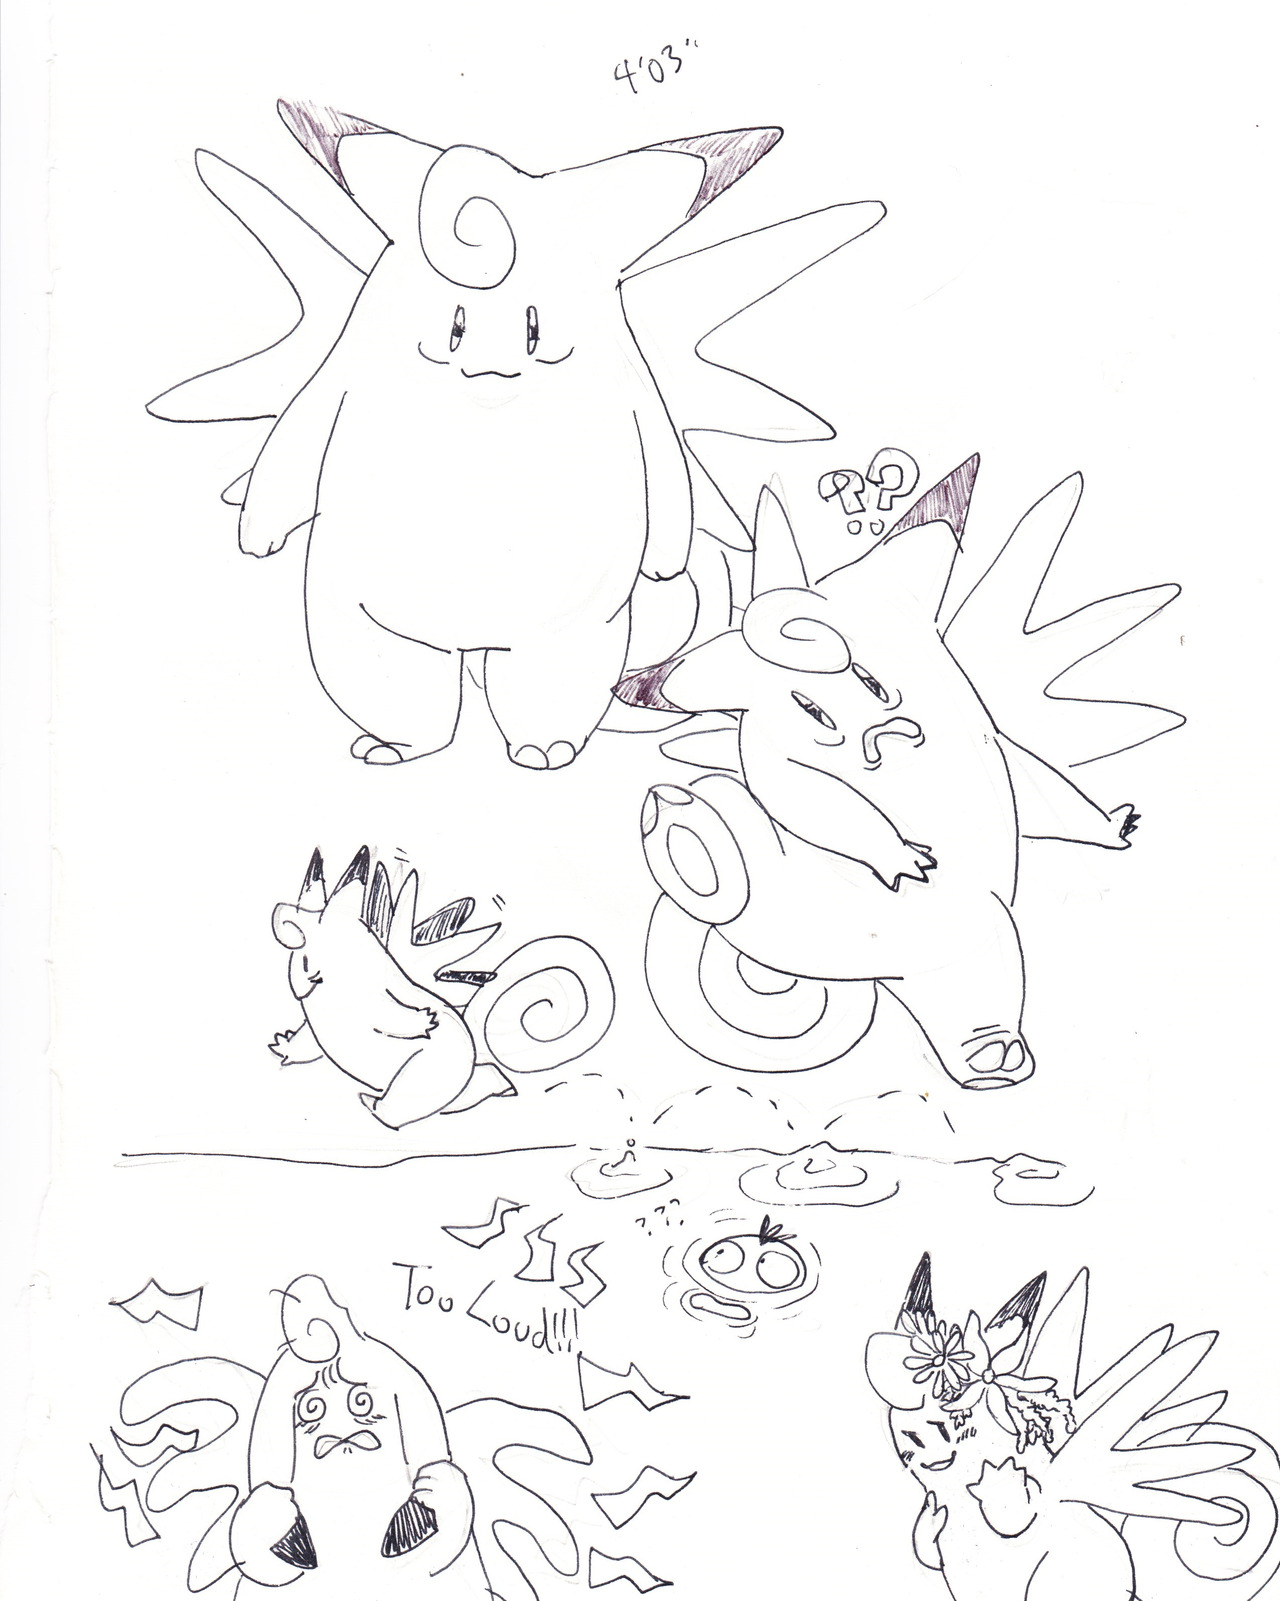 psmd-doodle-dump — coming up with ideas for why a big ass